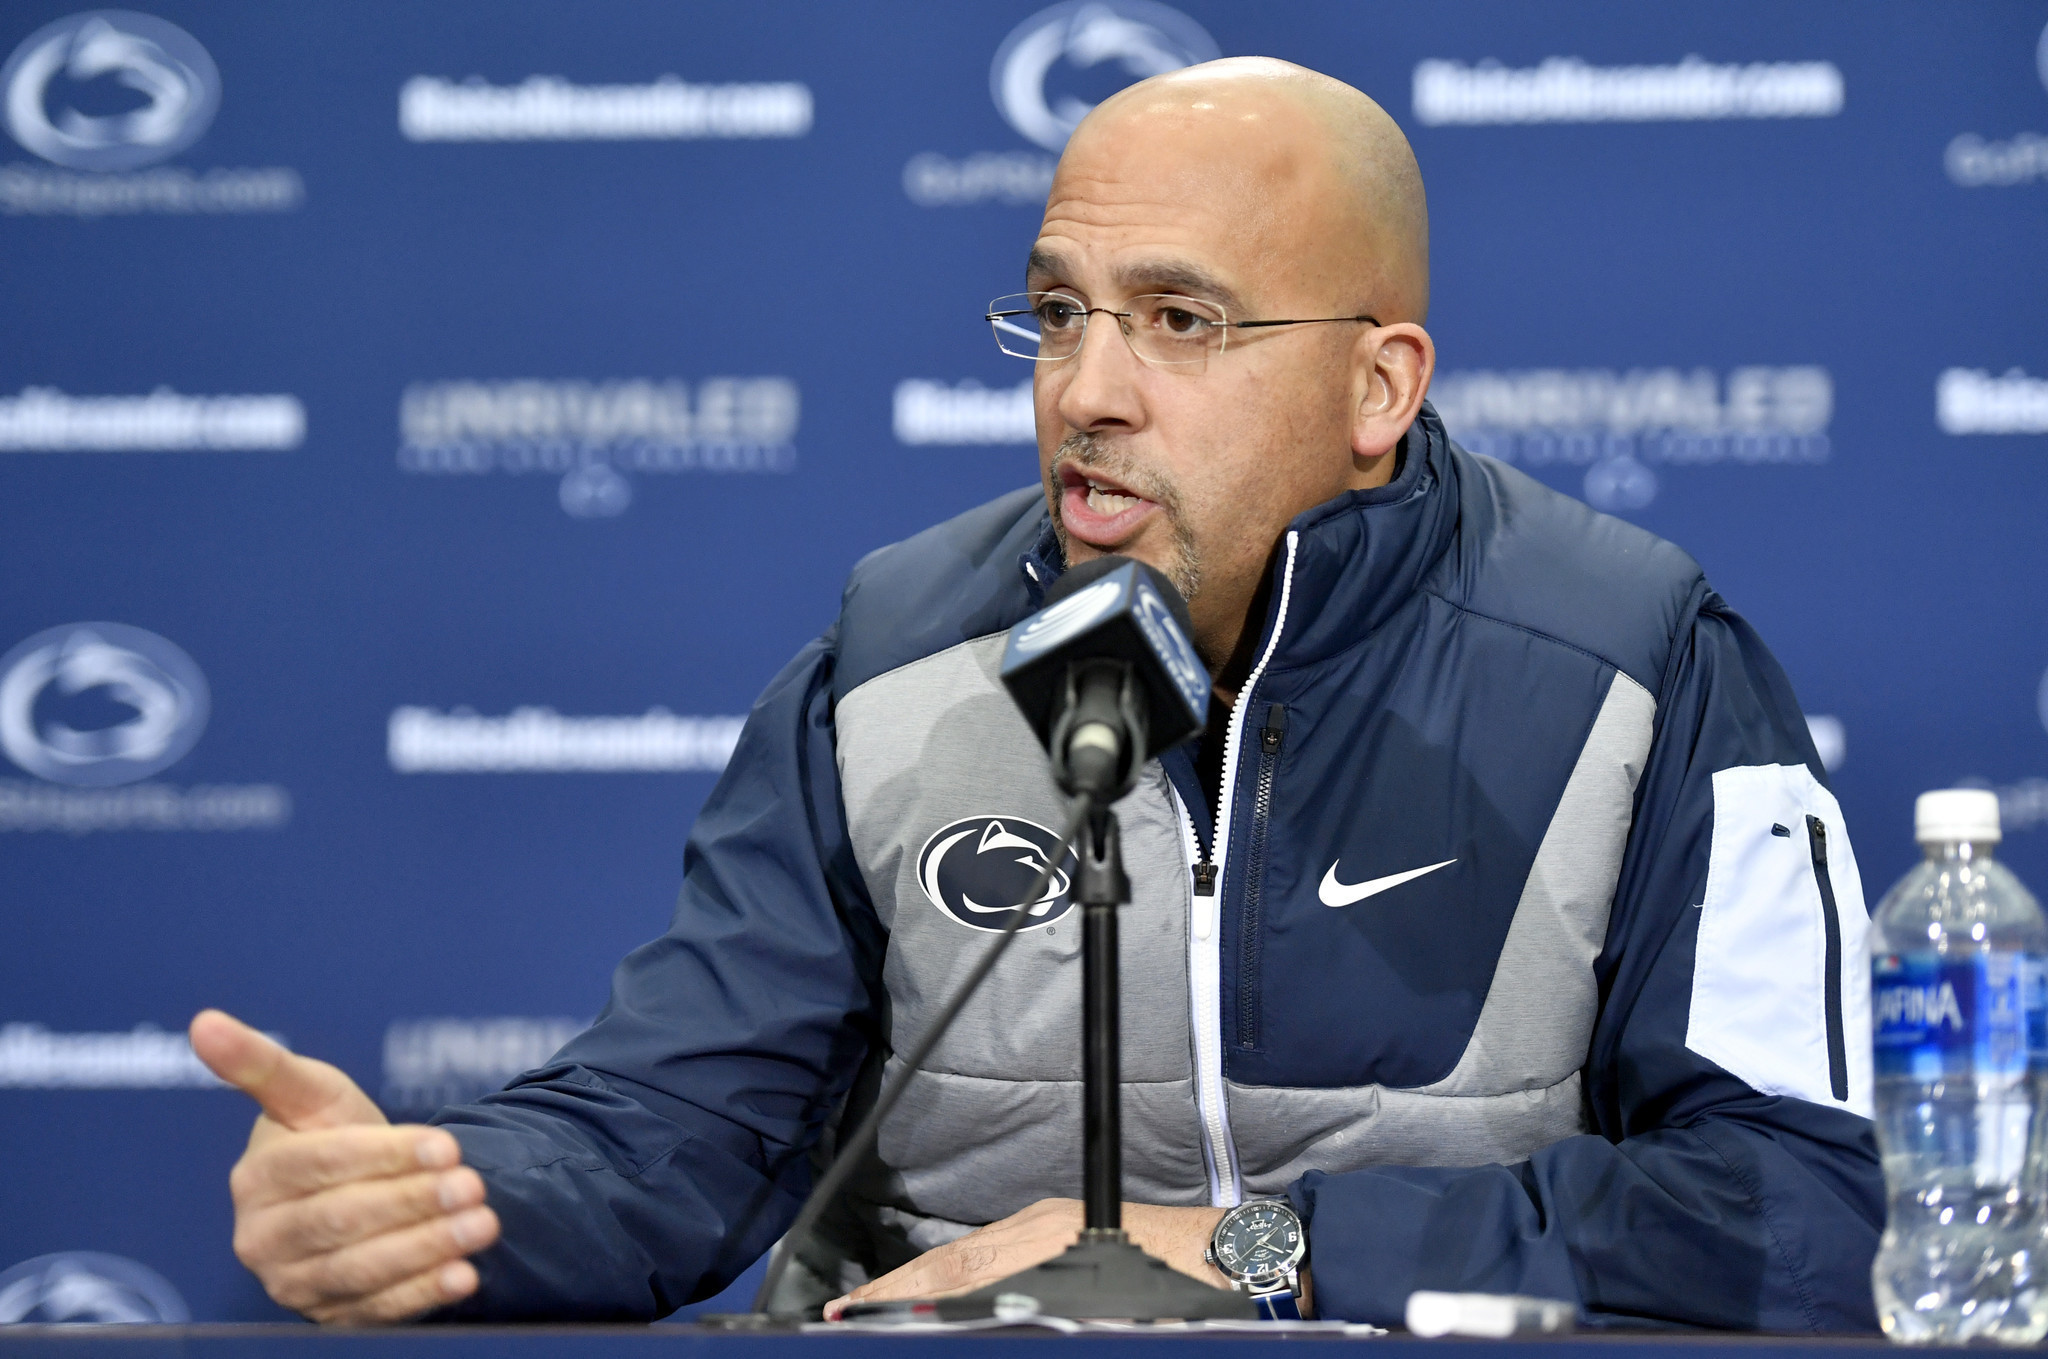 Mc-james-franklin-s-contract-extension-moving-along-penn-state-s-ad-says-20170508